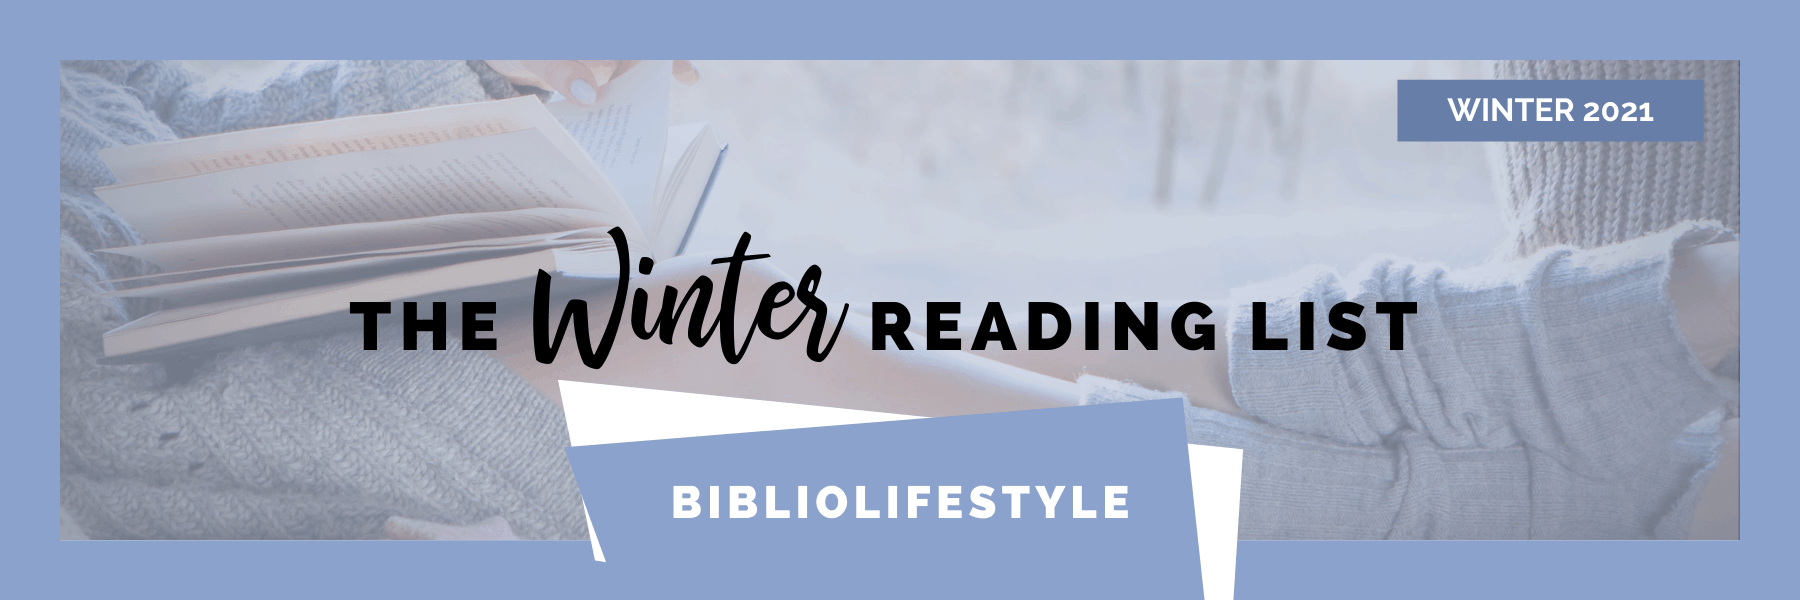 Winter Reading Guide 2021